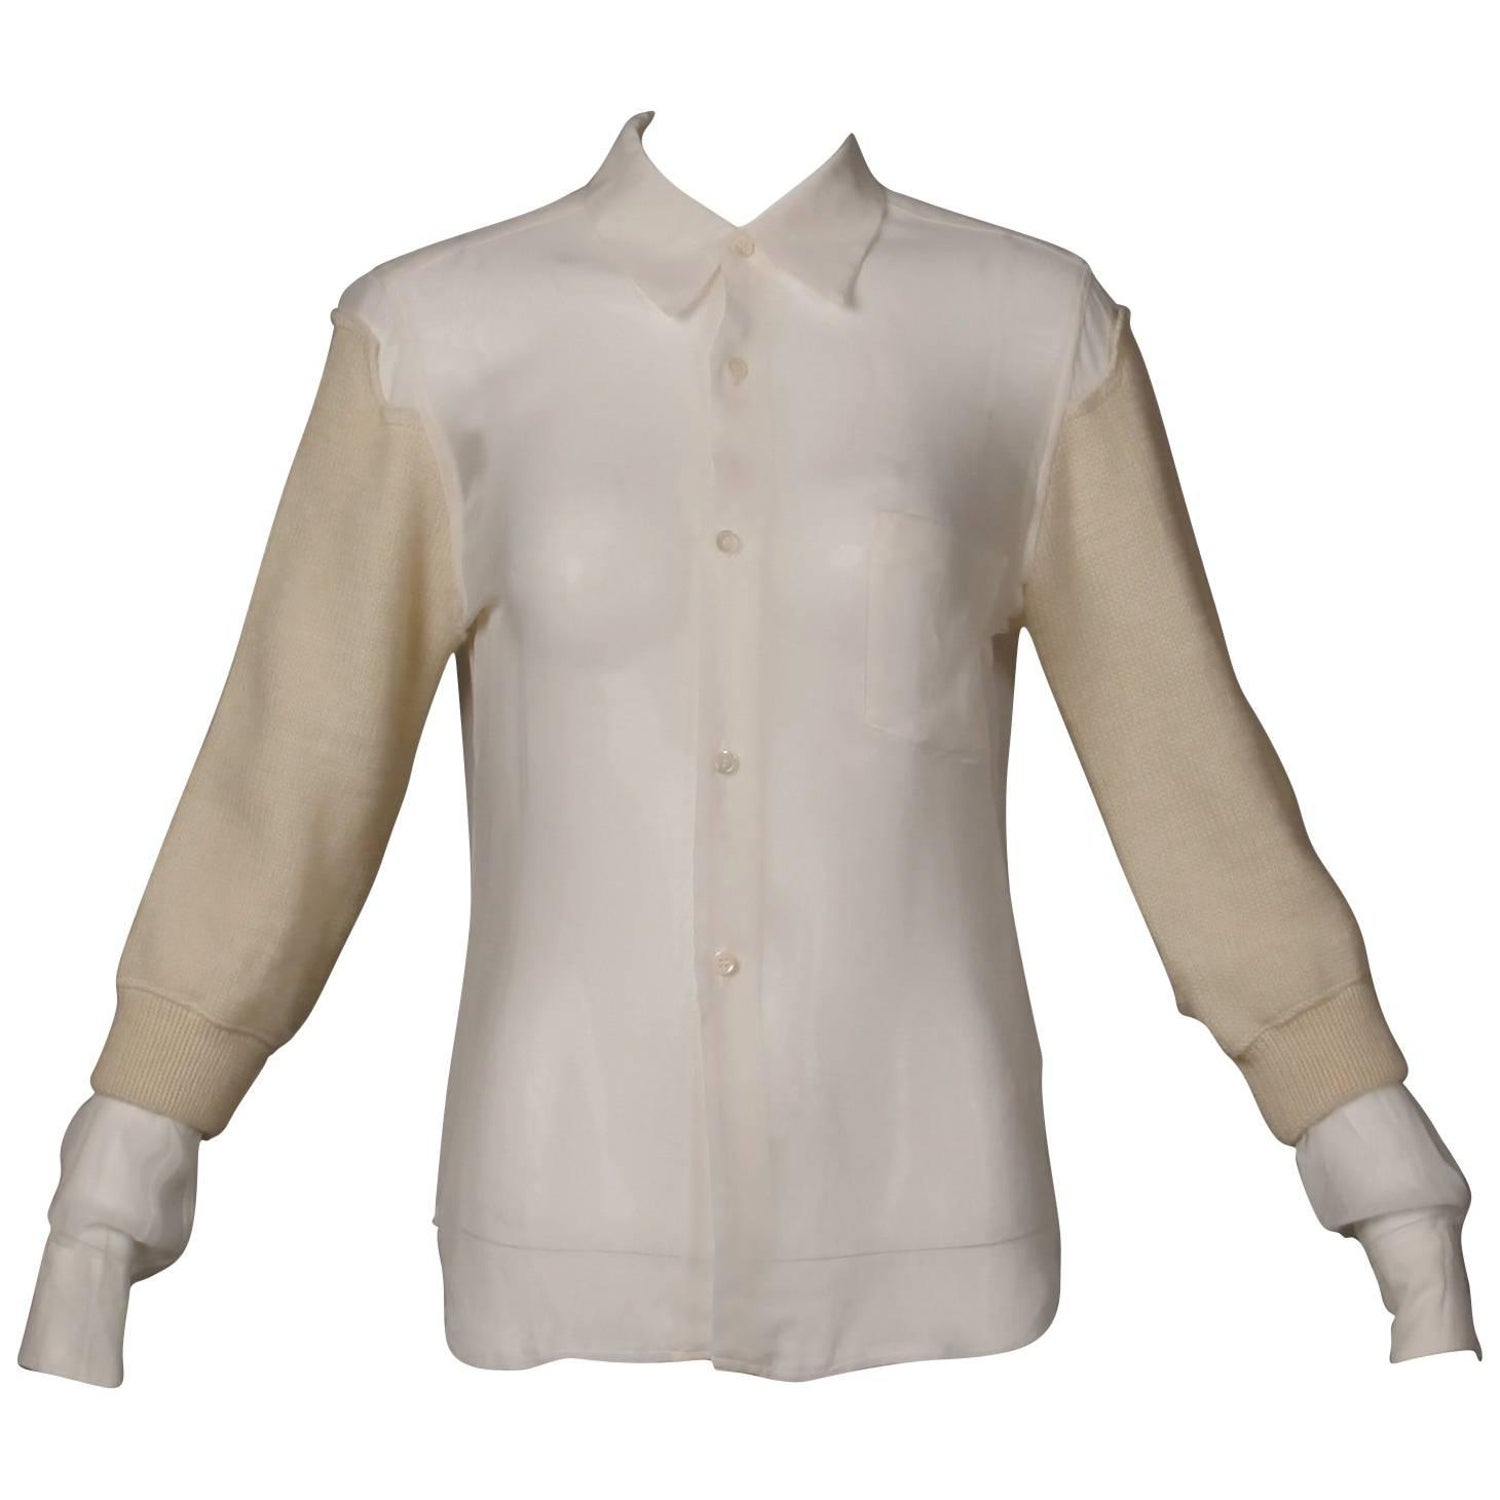 Comme Des Garcons White Button Up Blouse Top Shirt With Cream Wool